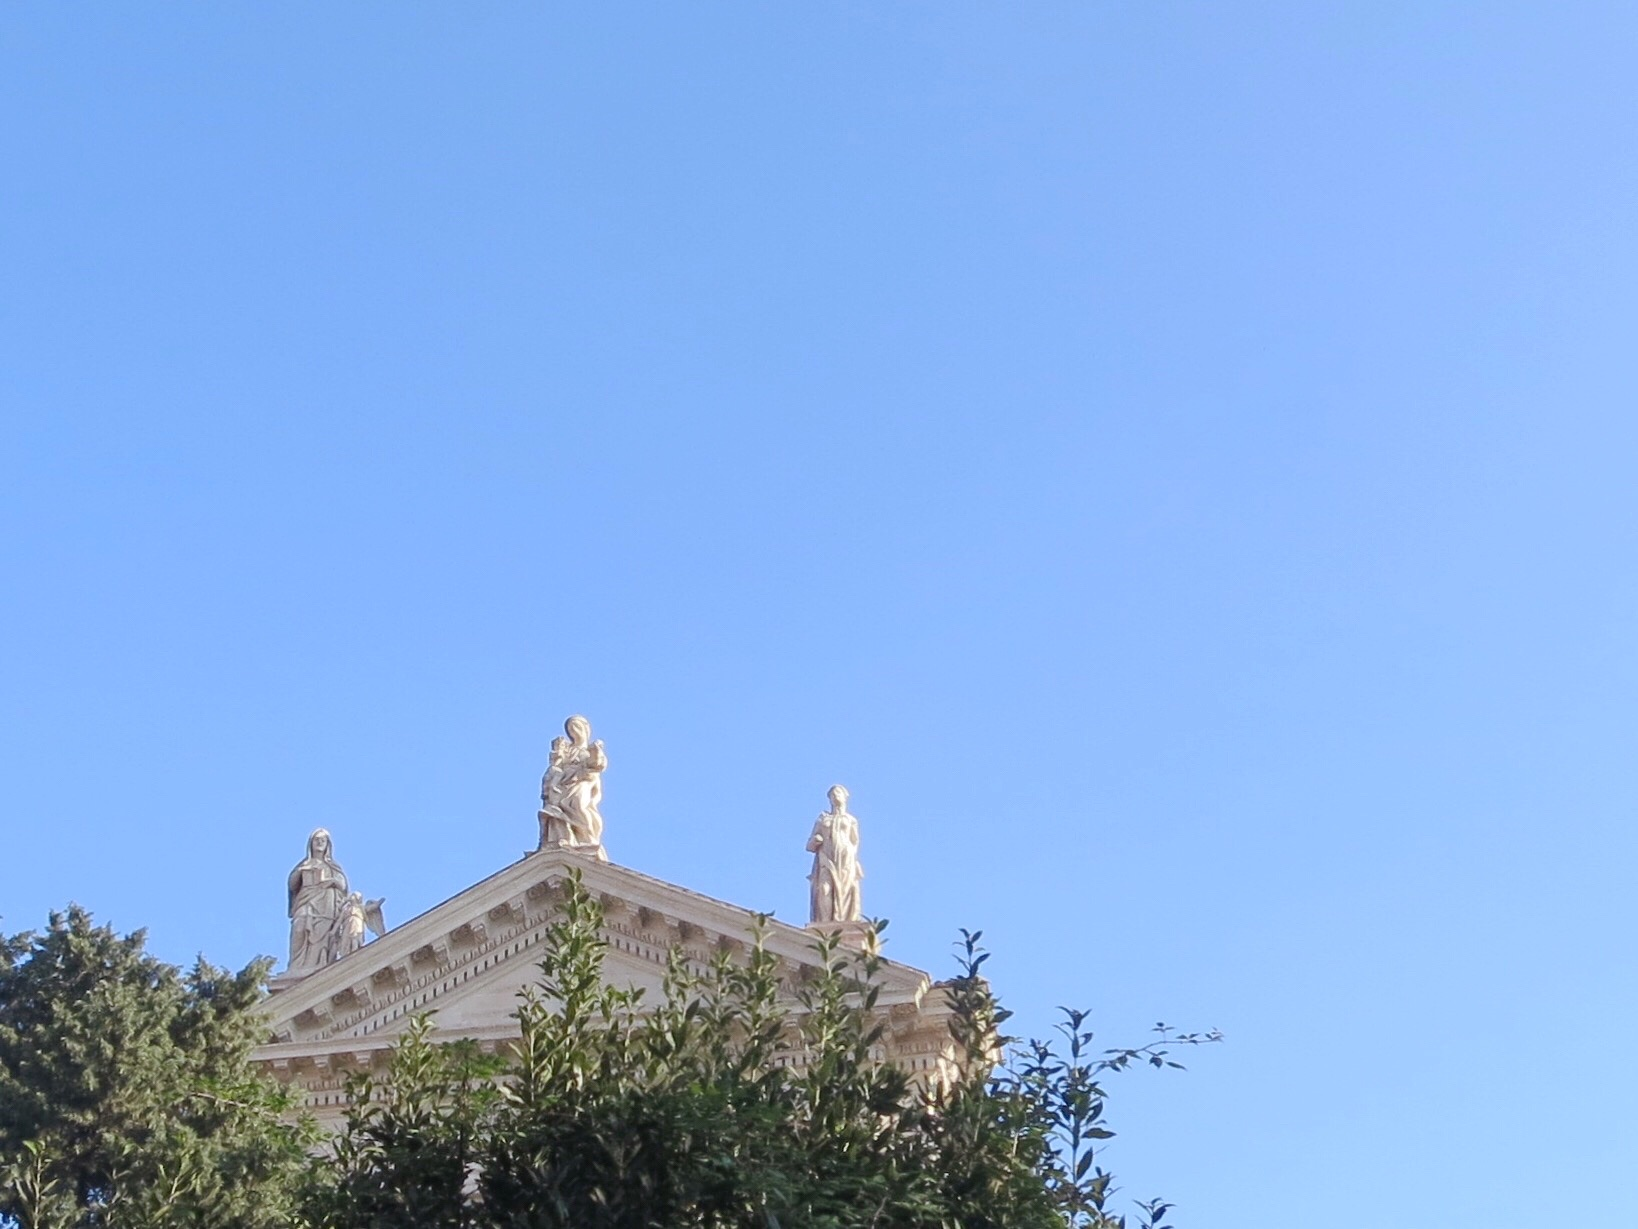 Statues atop a temple in the Roman Forum in Rome, Italy.